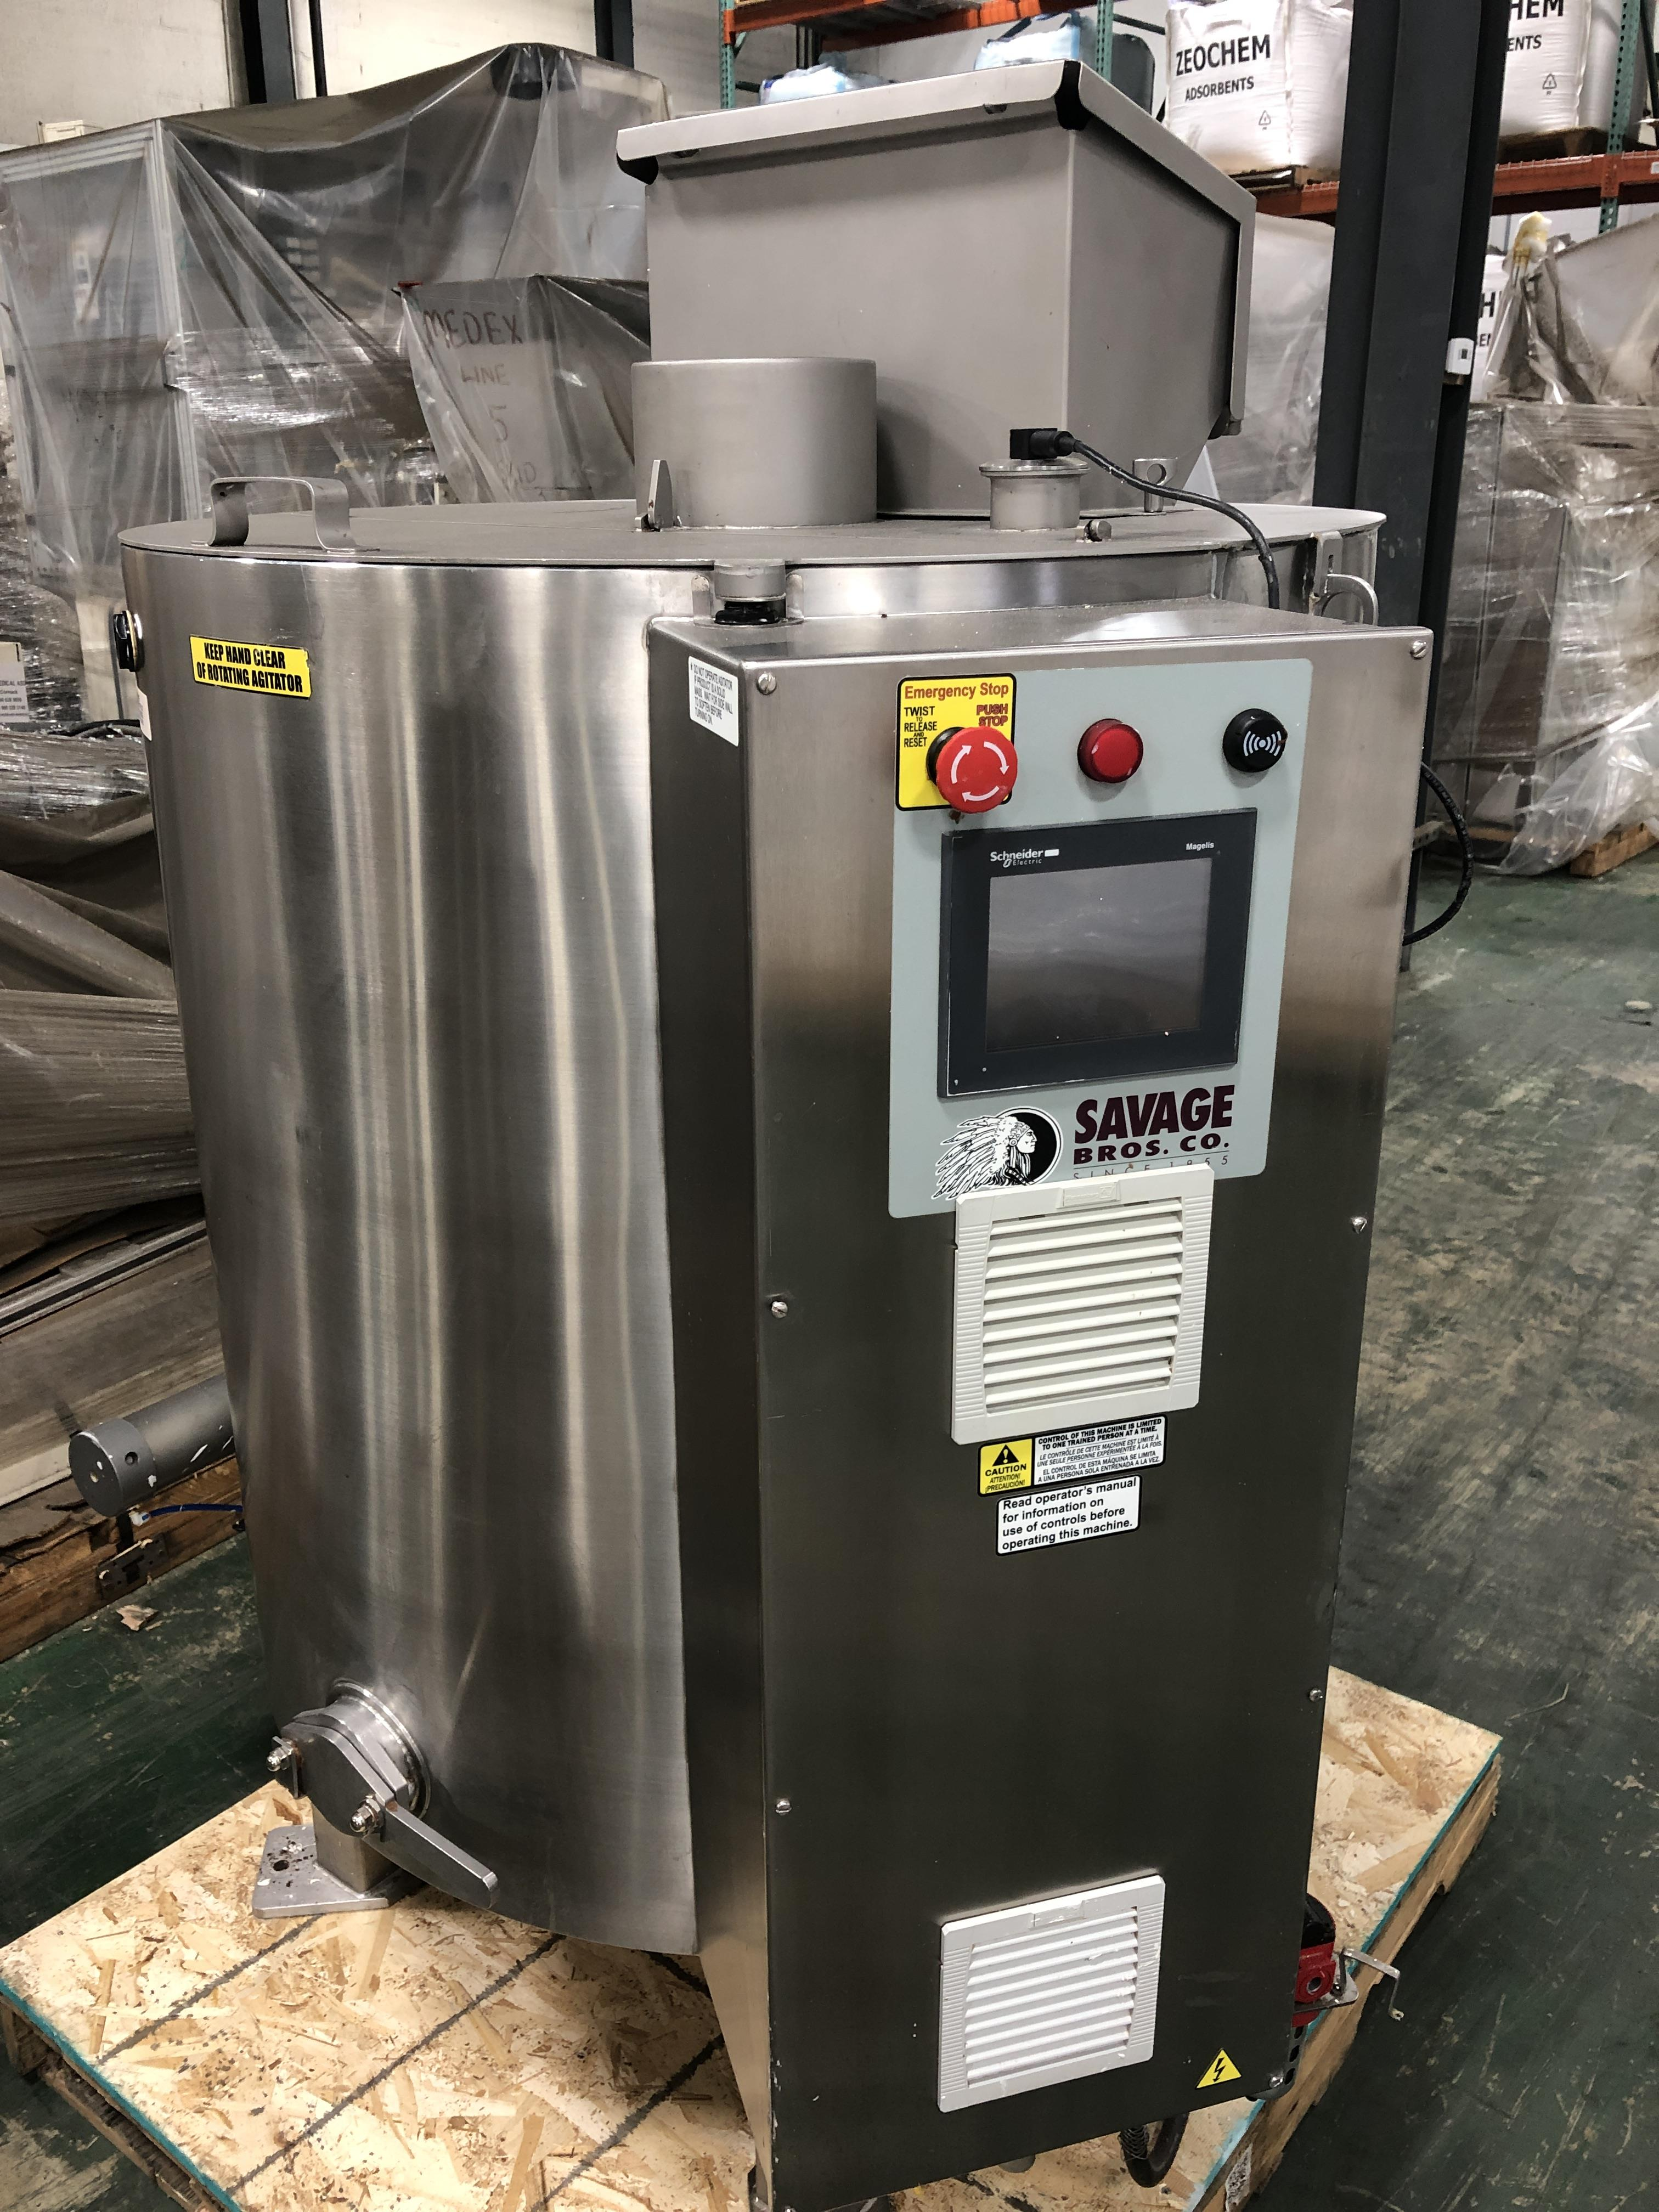 Lot 40 - Savage Stainless Steel 1250-lb Chocolate Melter, model 0974-36, with PLC touchscreen controls, water